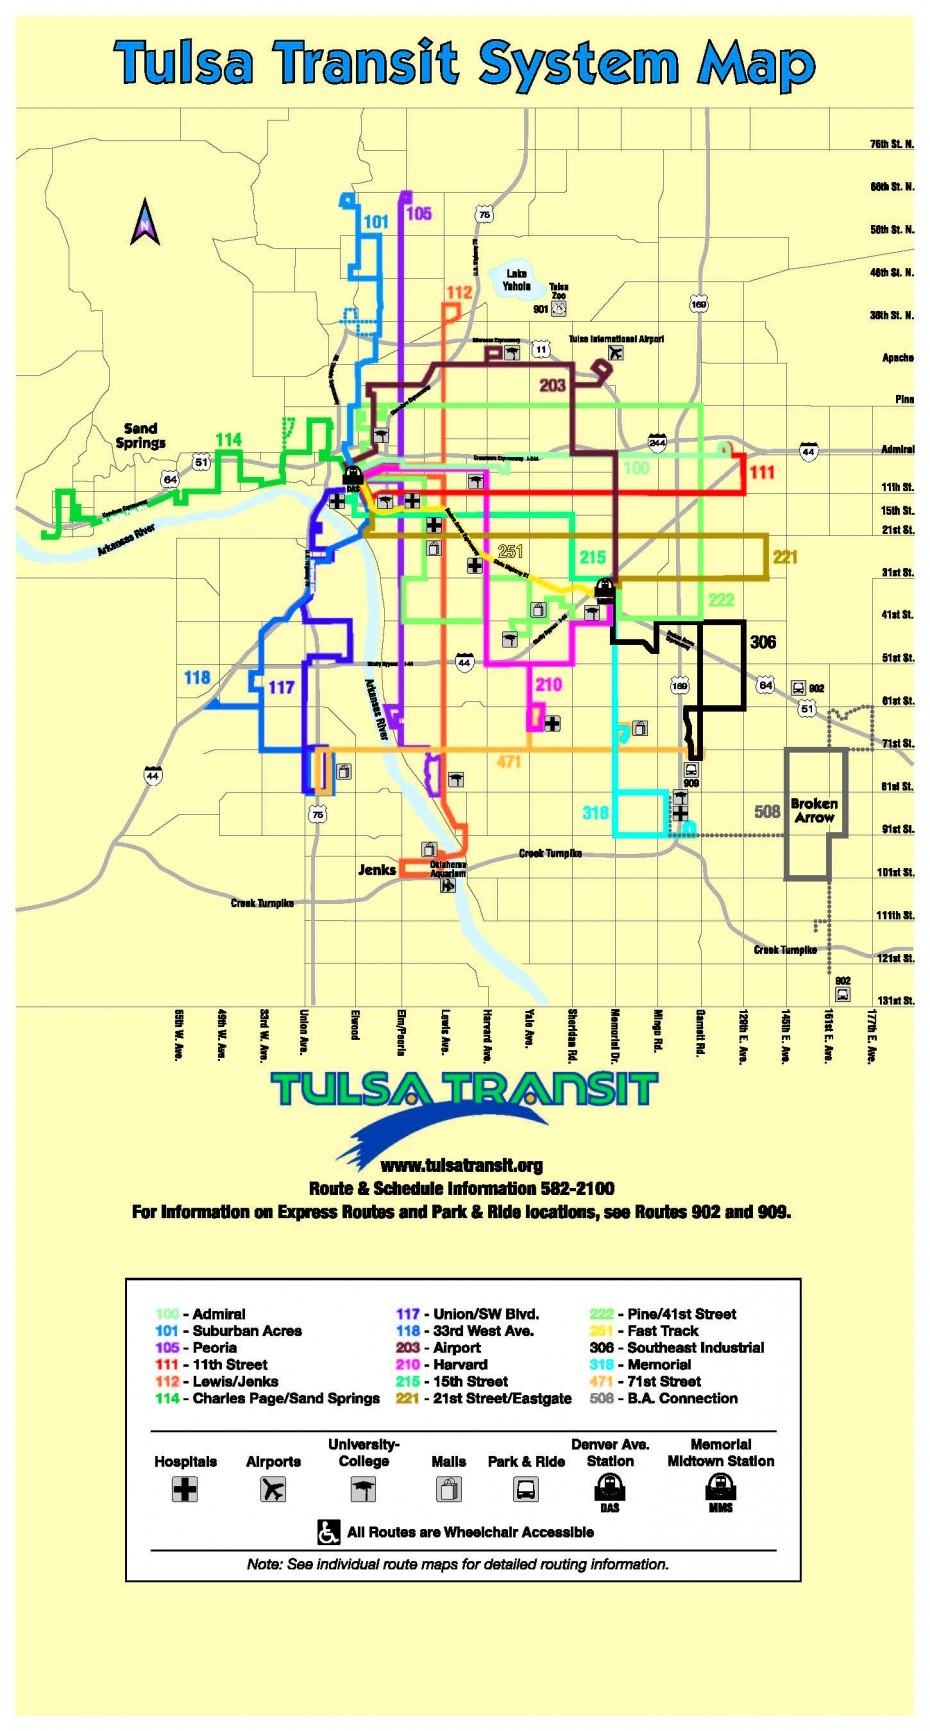 Official Map: Bus Routes of Tulsa, Oklahoma Time for another entry in the Worst Map Contest, and this one, from Tulsa, Oklahoma, is right up there with the very worst. Have we been there? No, and on the evidence of this map, I'm not sure I want to. What we like: I will say that the labelling of the street grid along the edges is actually a very clever idea that frees up the centre of the map for the routes. What we don't like: First off, the quality of the map is simply terrible: JPG artefacts from over-compression, resulting in blurry type and route lines. The typography, both of the map title and the transit agency logo, is appalling and seems to have escaped from 1984 or thereabouts. Poorly conceived, generic icons, some of which scale terribly down to the size used on the map. Look at the icon for Universities/Colleges: what is that? A palm tree?* The bus station icon fills in so badly that it's almost impossible to work out what it actually represents. The downtown area is terribly cramped and poorly drawn. There are dotted lines for some routes with no explanation of what that means in the key. There's a freakin' rainbow gradient in the north pointer. Our rating: Embarrassing. One star, and that's only because I'm reserving half a star for something truly heinous. Already, after just two blog posts, Michael Champlin's alternative map looks far more promising and definitely a project worth following as it unfolds.  (Source: Official Tulsa Transit website) *PS: Yes, I know it's a mortarboard cap and tassel, but it shouldn't be such hard work to see that. At the size it's used on the map, it becomes a blobby mess and could be just about anything.